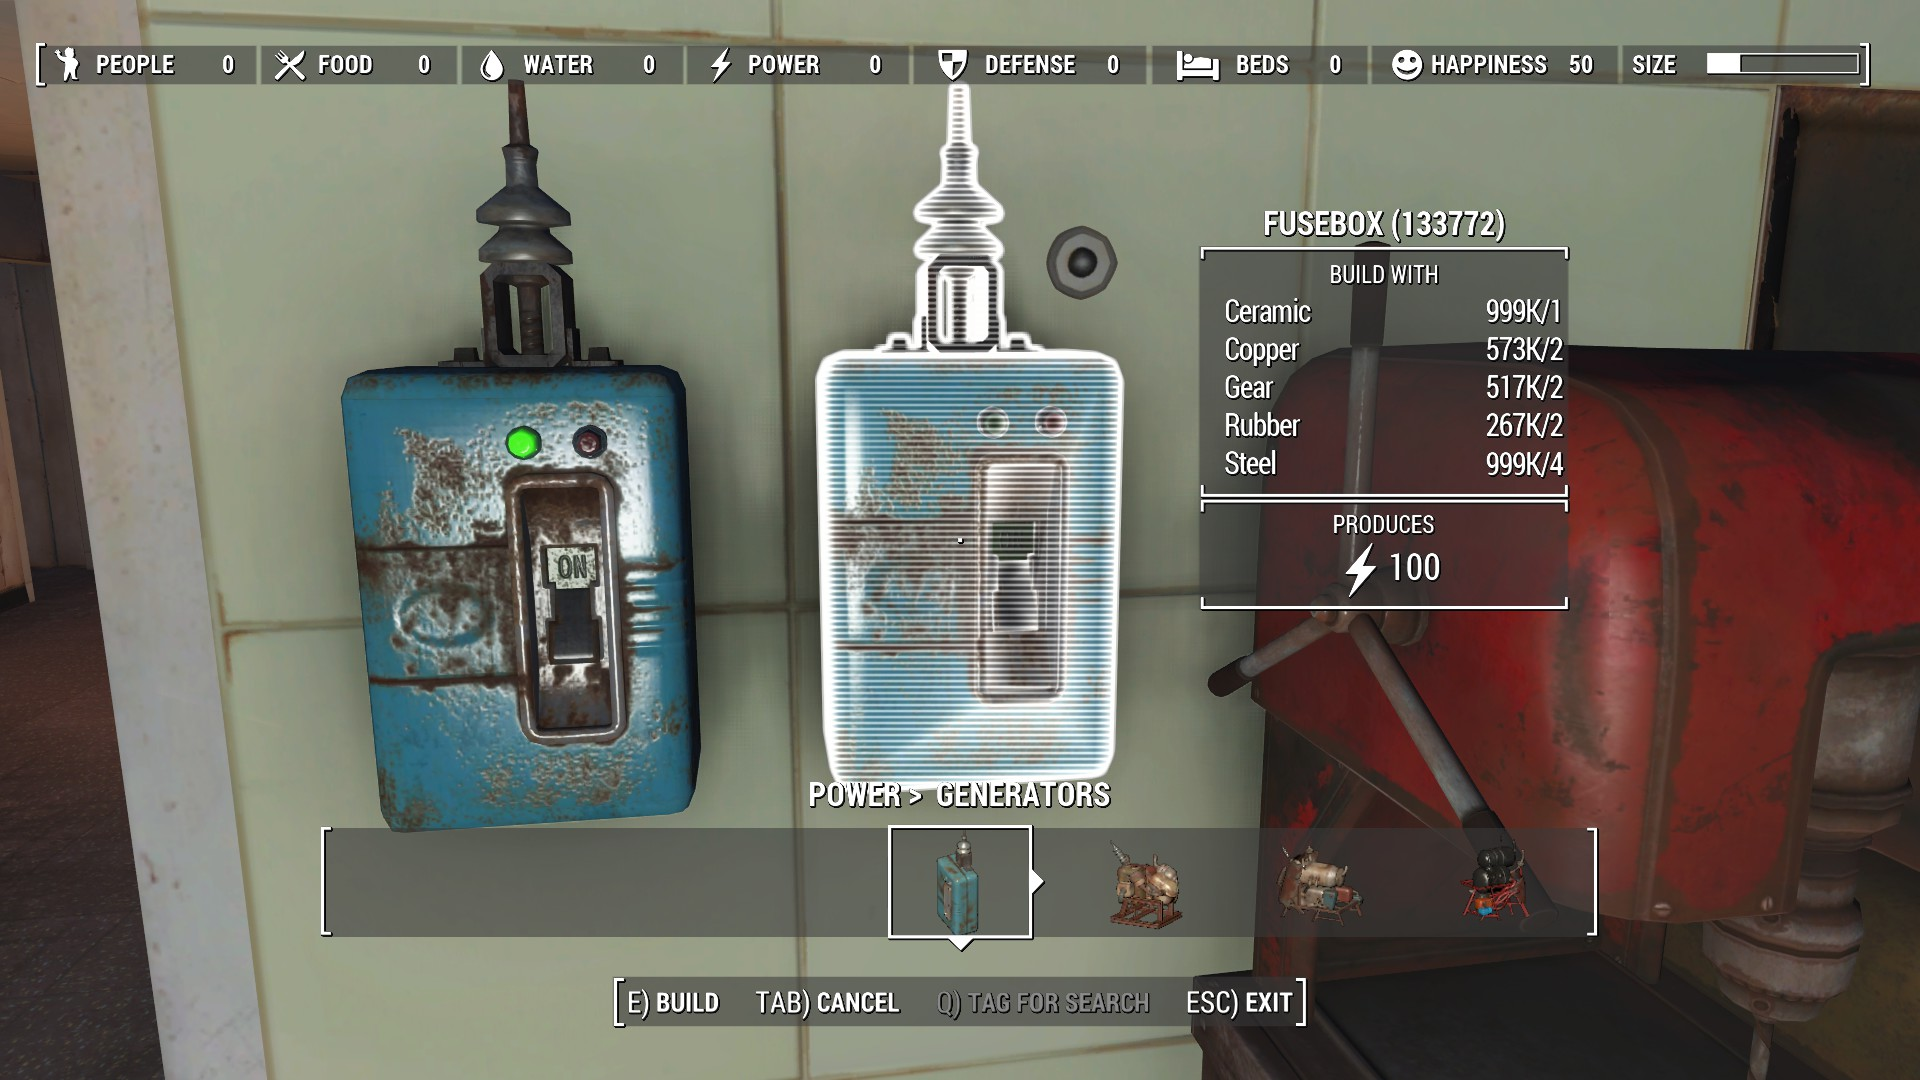 3429 0 1448747560 fallout 4 fuse box id fallout 3 xbox 360 \u2022 wiring diagram database fallout 4 fuse box lid at bayanpartner.co